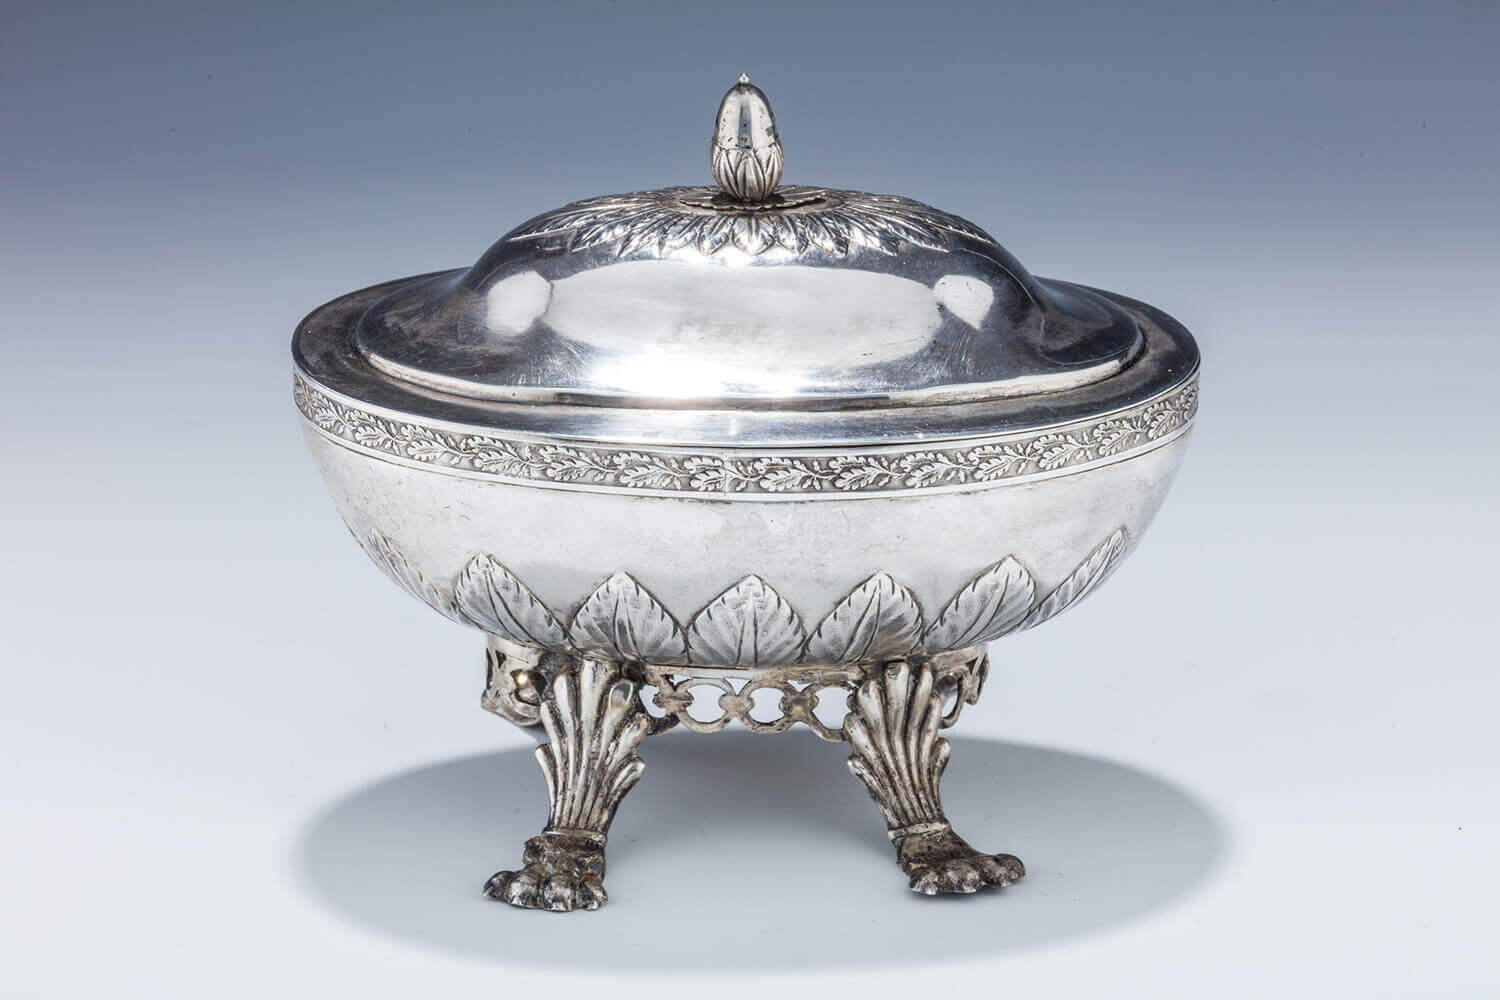 001. A LARGE SILVER ETROG BOX